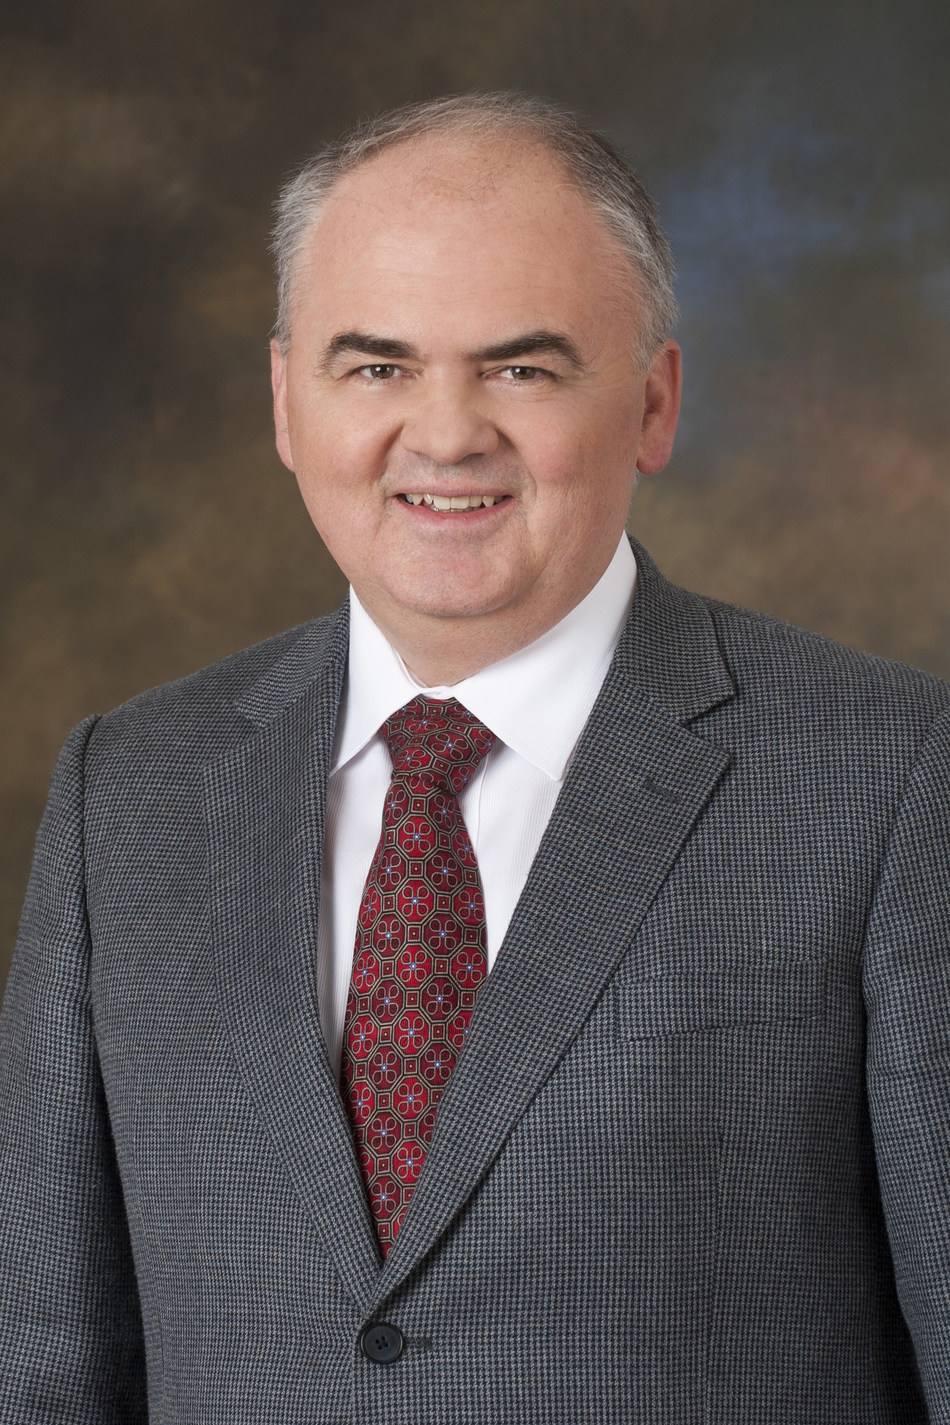 Heritage Health Solutions, Inc. appoints Dr. Robert Rookstool to Board of Directors